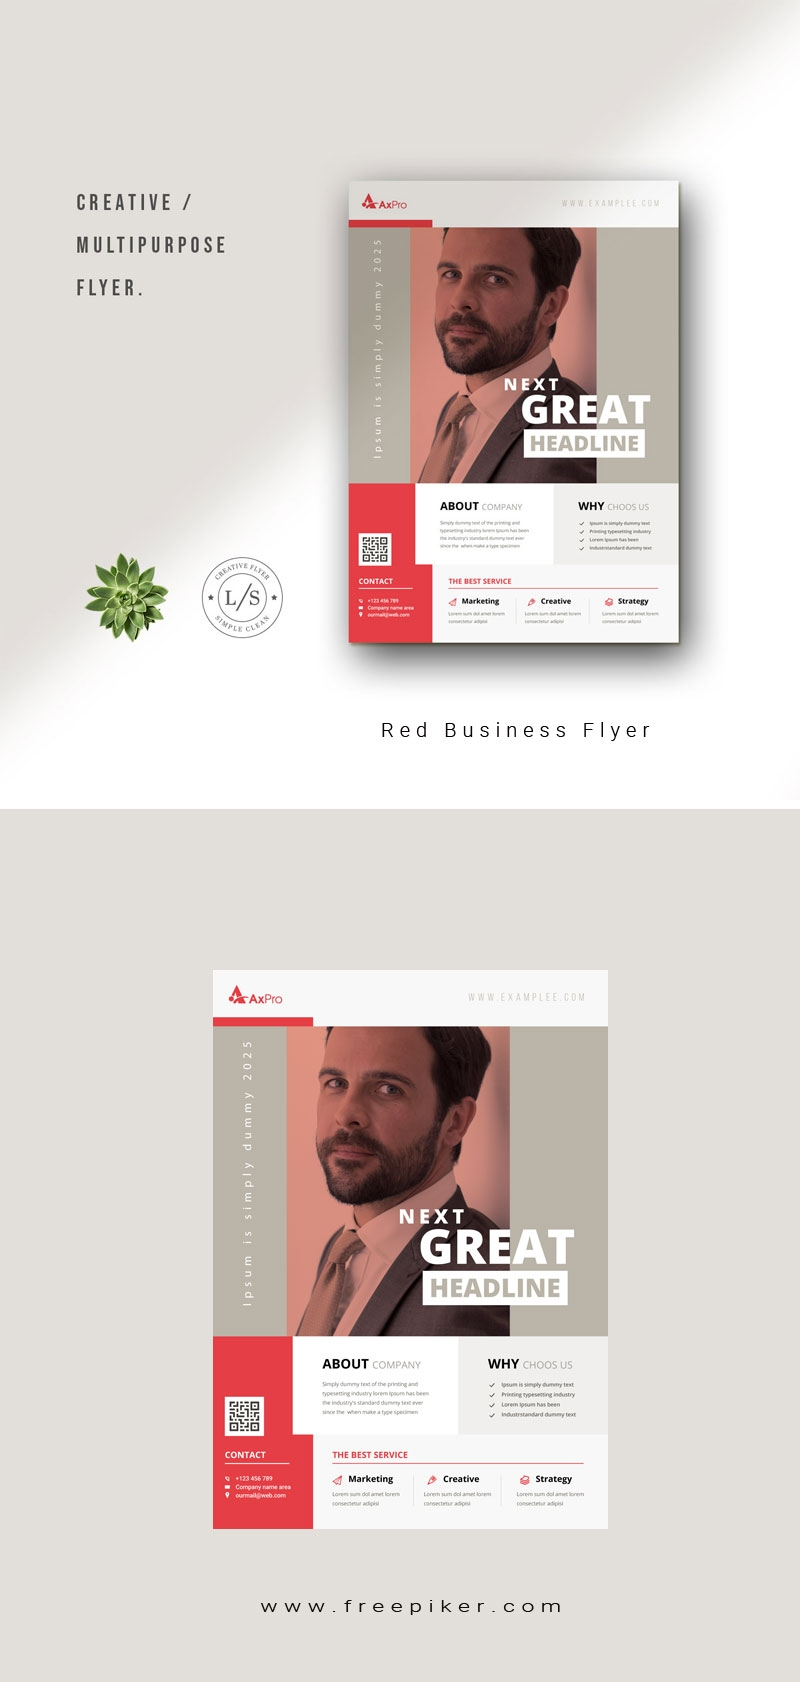 Red Business Flyer